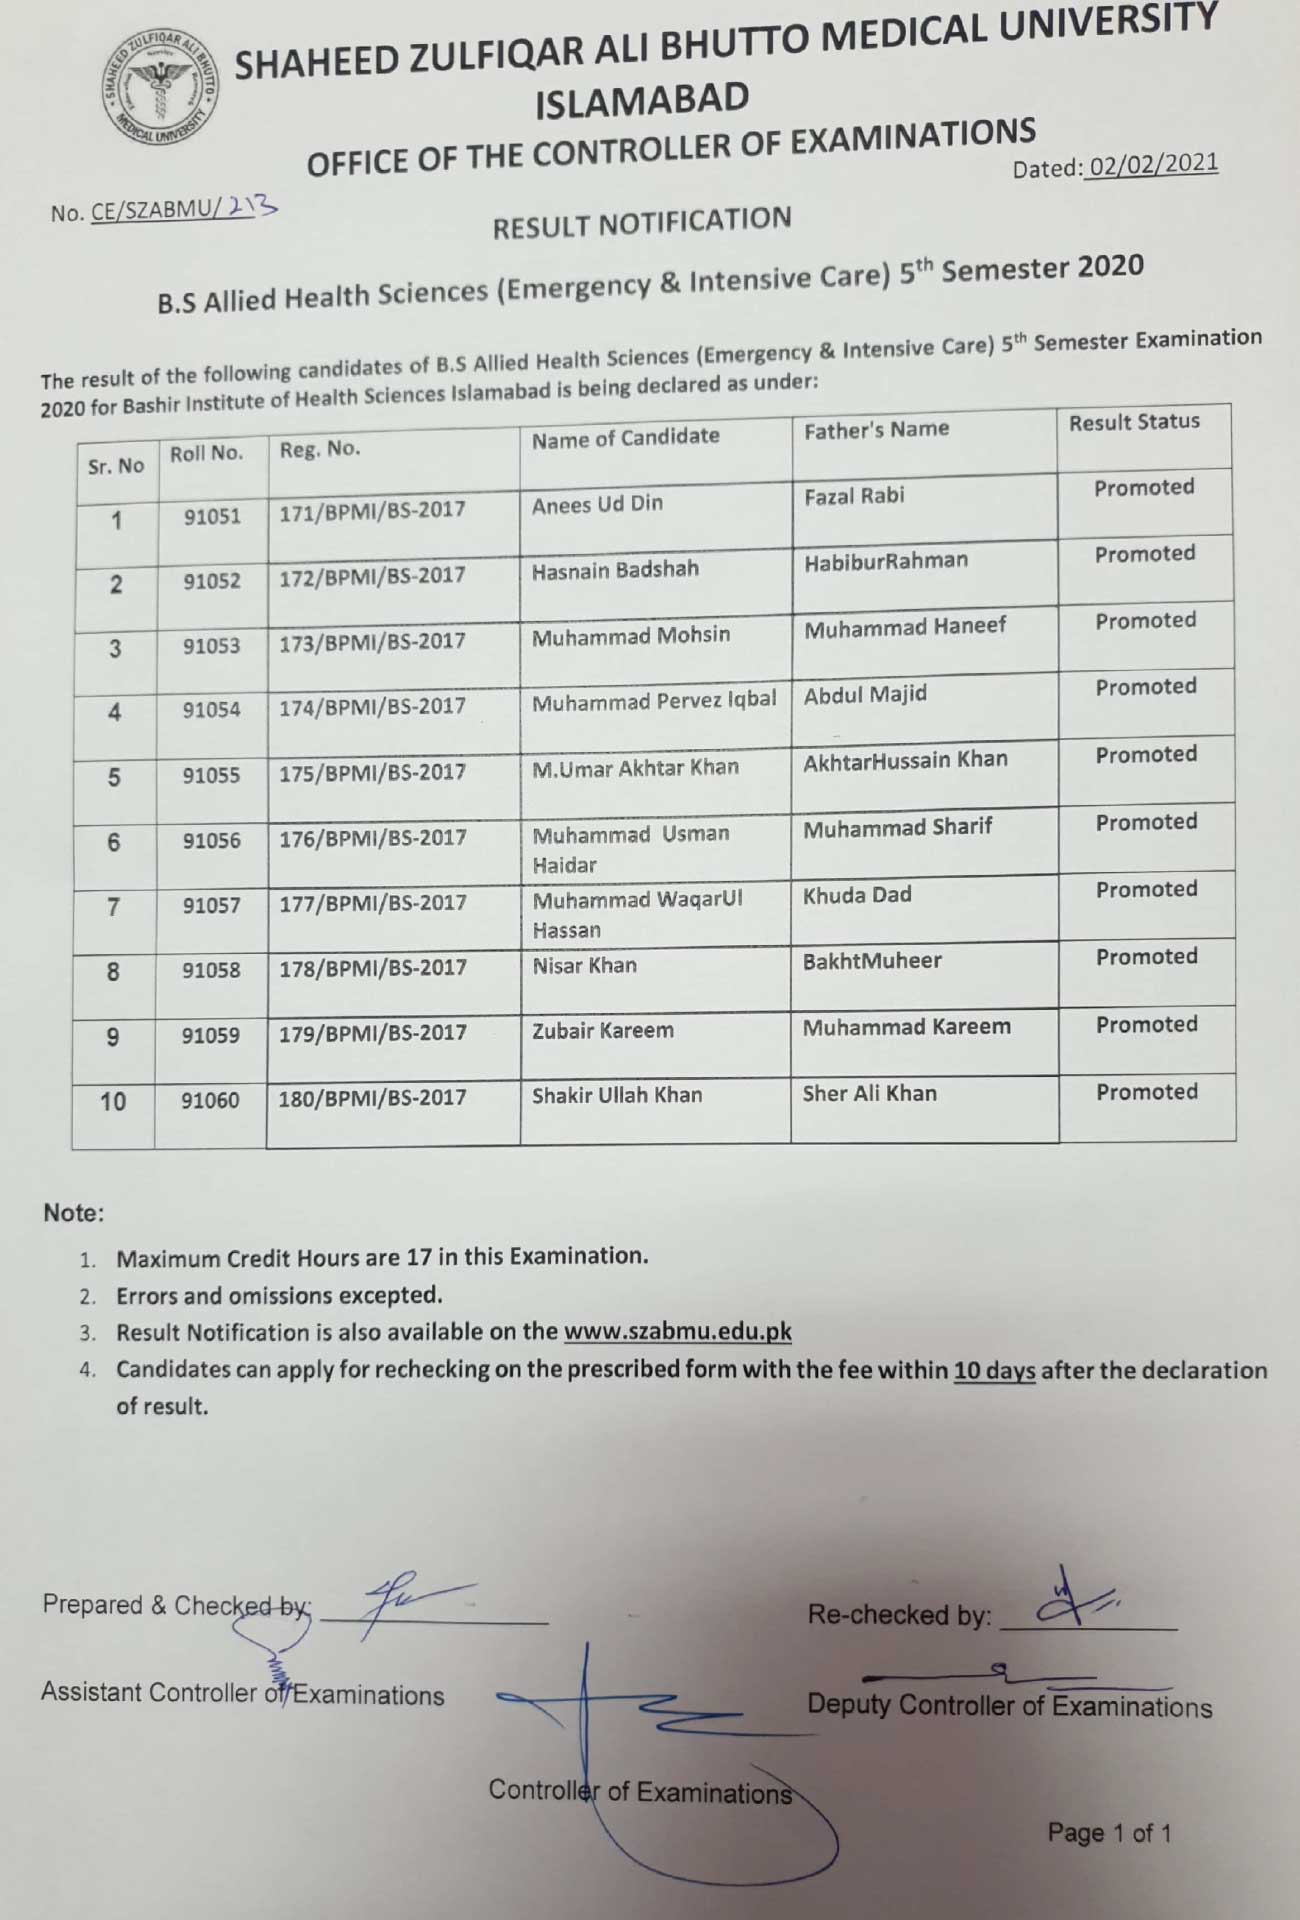 Result Notification - B.S Allied Health Sciences 5th Semester